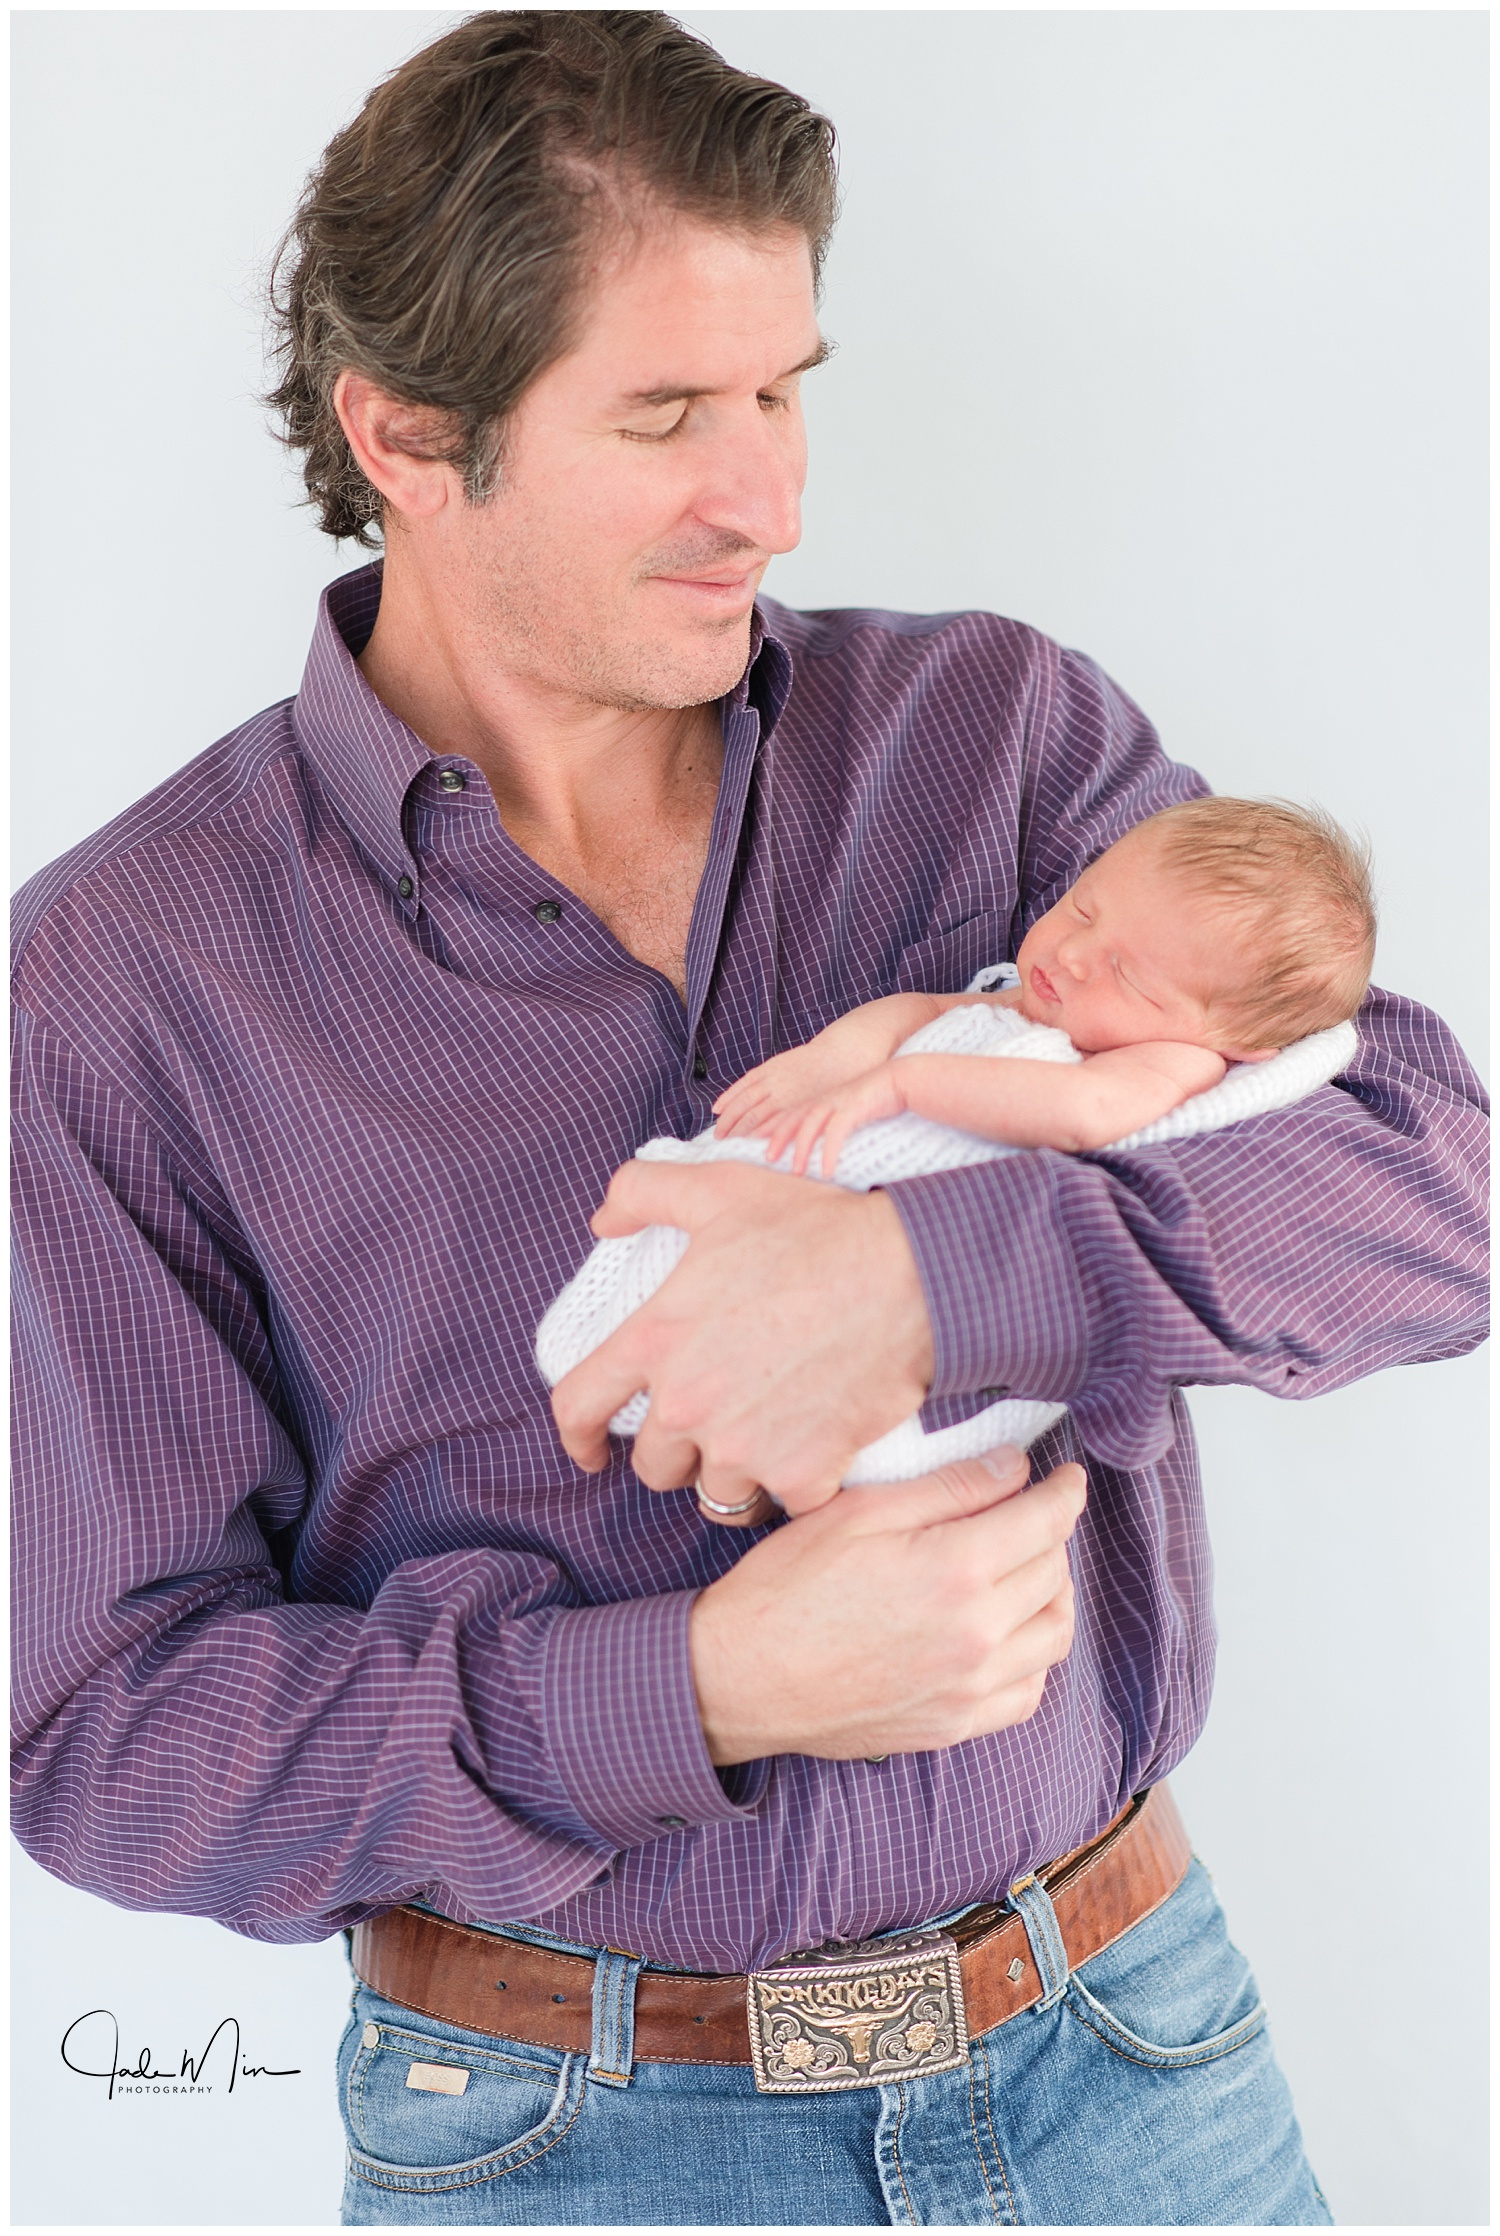 Baby Amelia being held by proud daddy during the newborn session at the Florez family home in Scottsdale, Arizona.